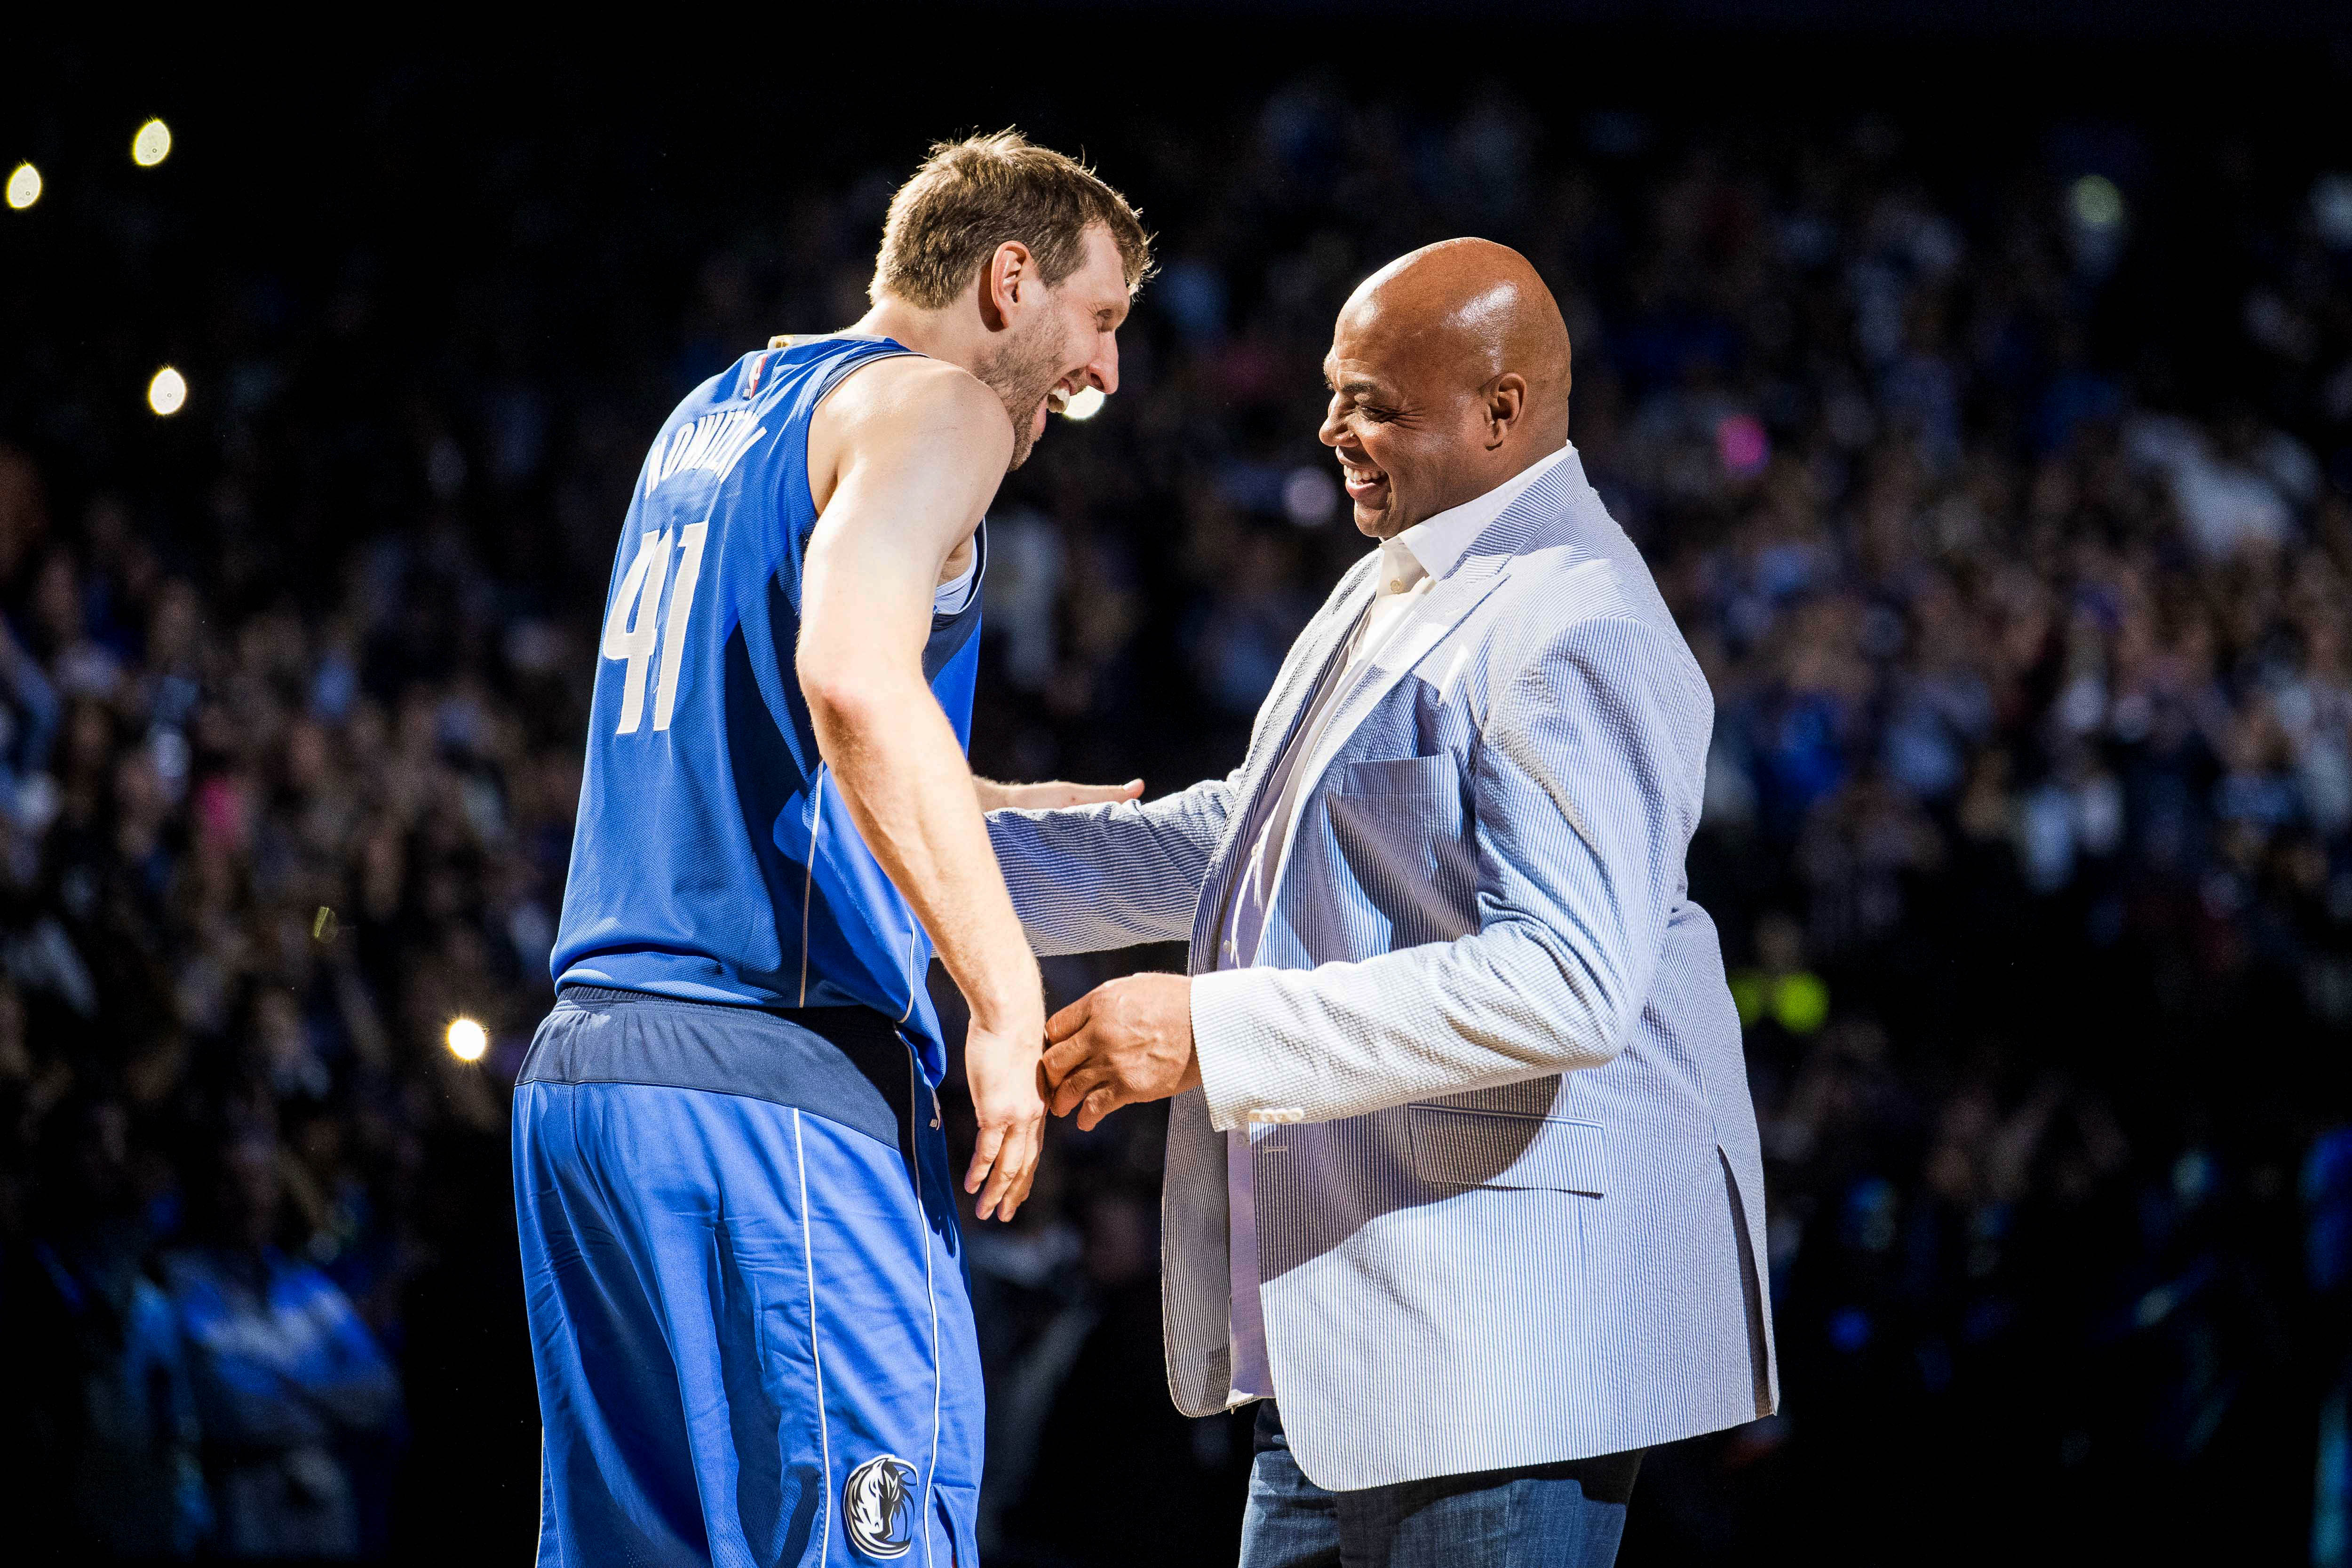 Apr 9, 2019; Dallas, TX, USA; Dallas Mavericks forward Dirk Nowitzki (41) greets former player Charles Barkley after a game against the Phoenix Suns at the American Airlines Center. Mandatory Credit: Jerome Miron-USA TODAY Sports